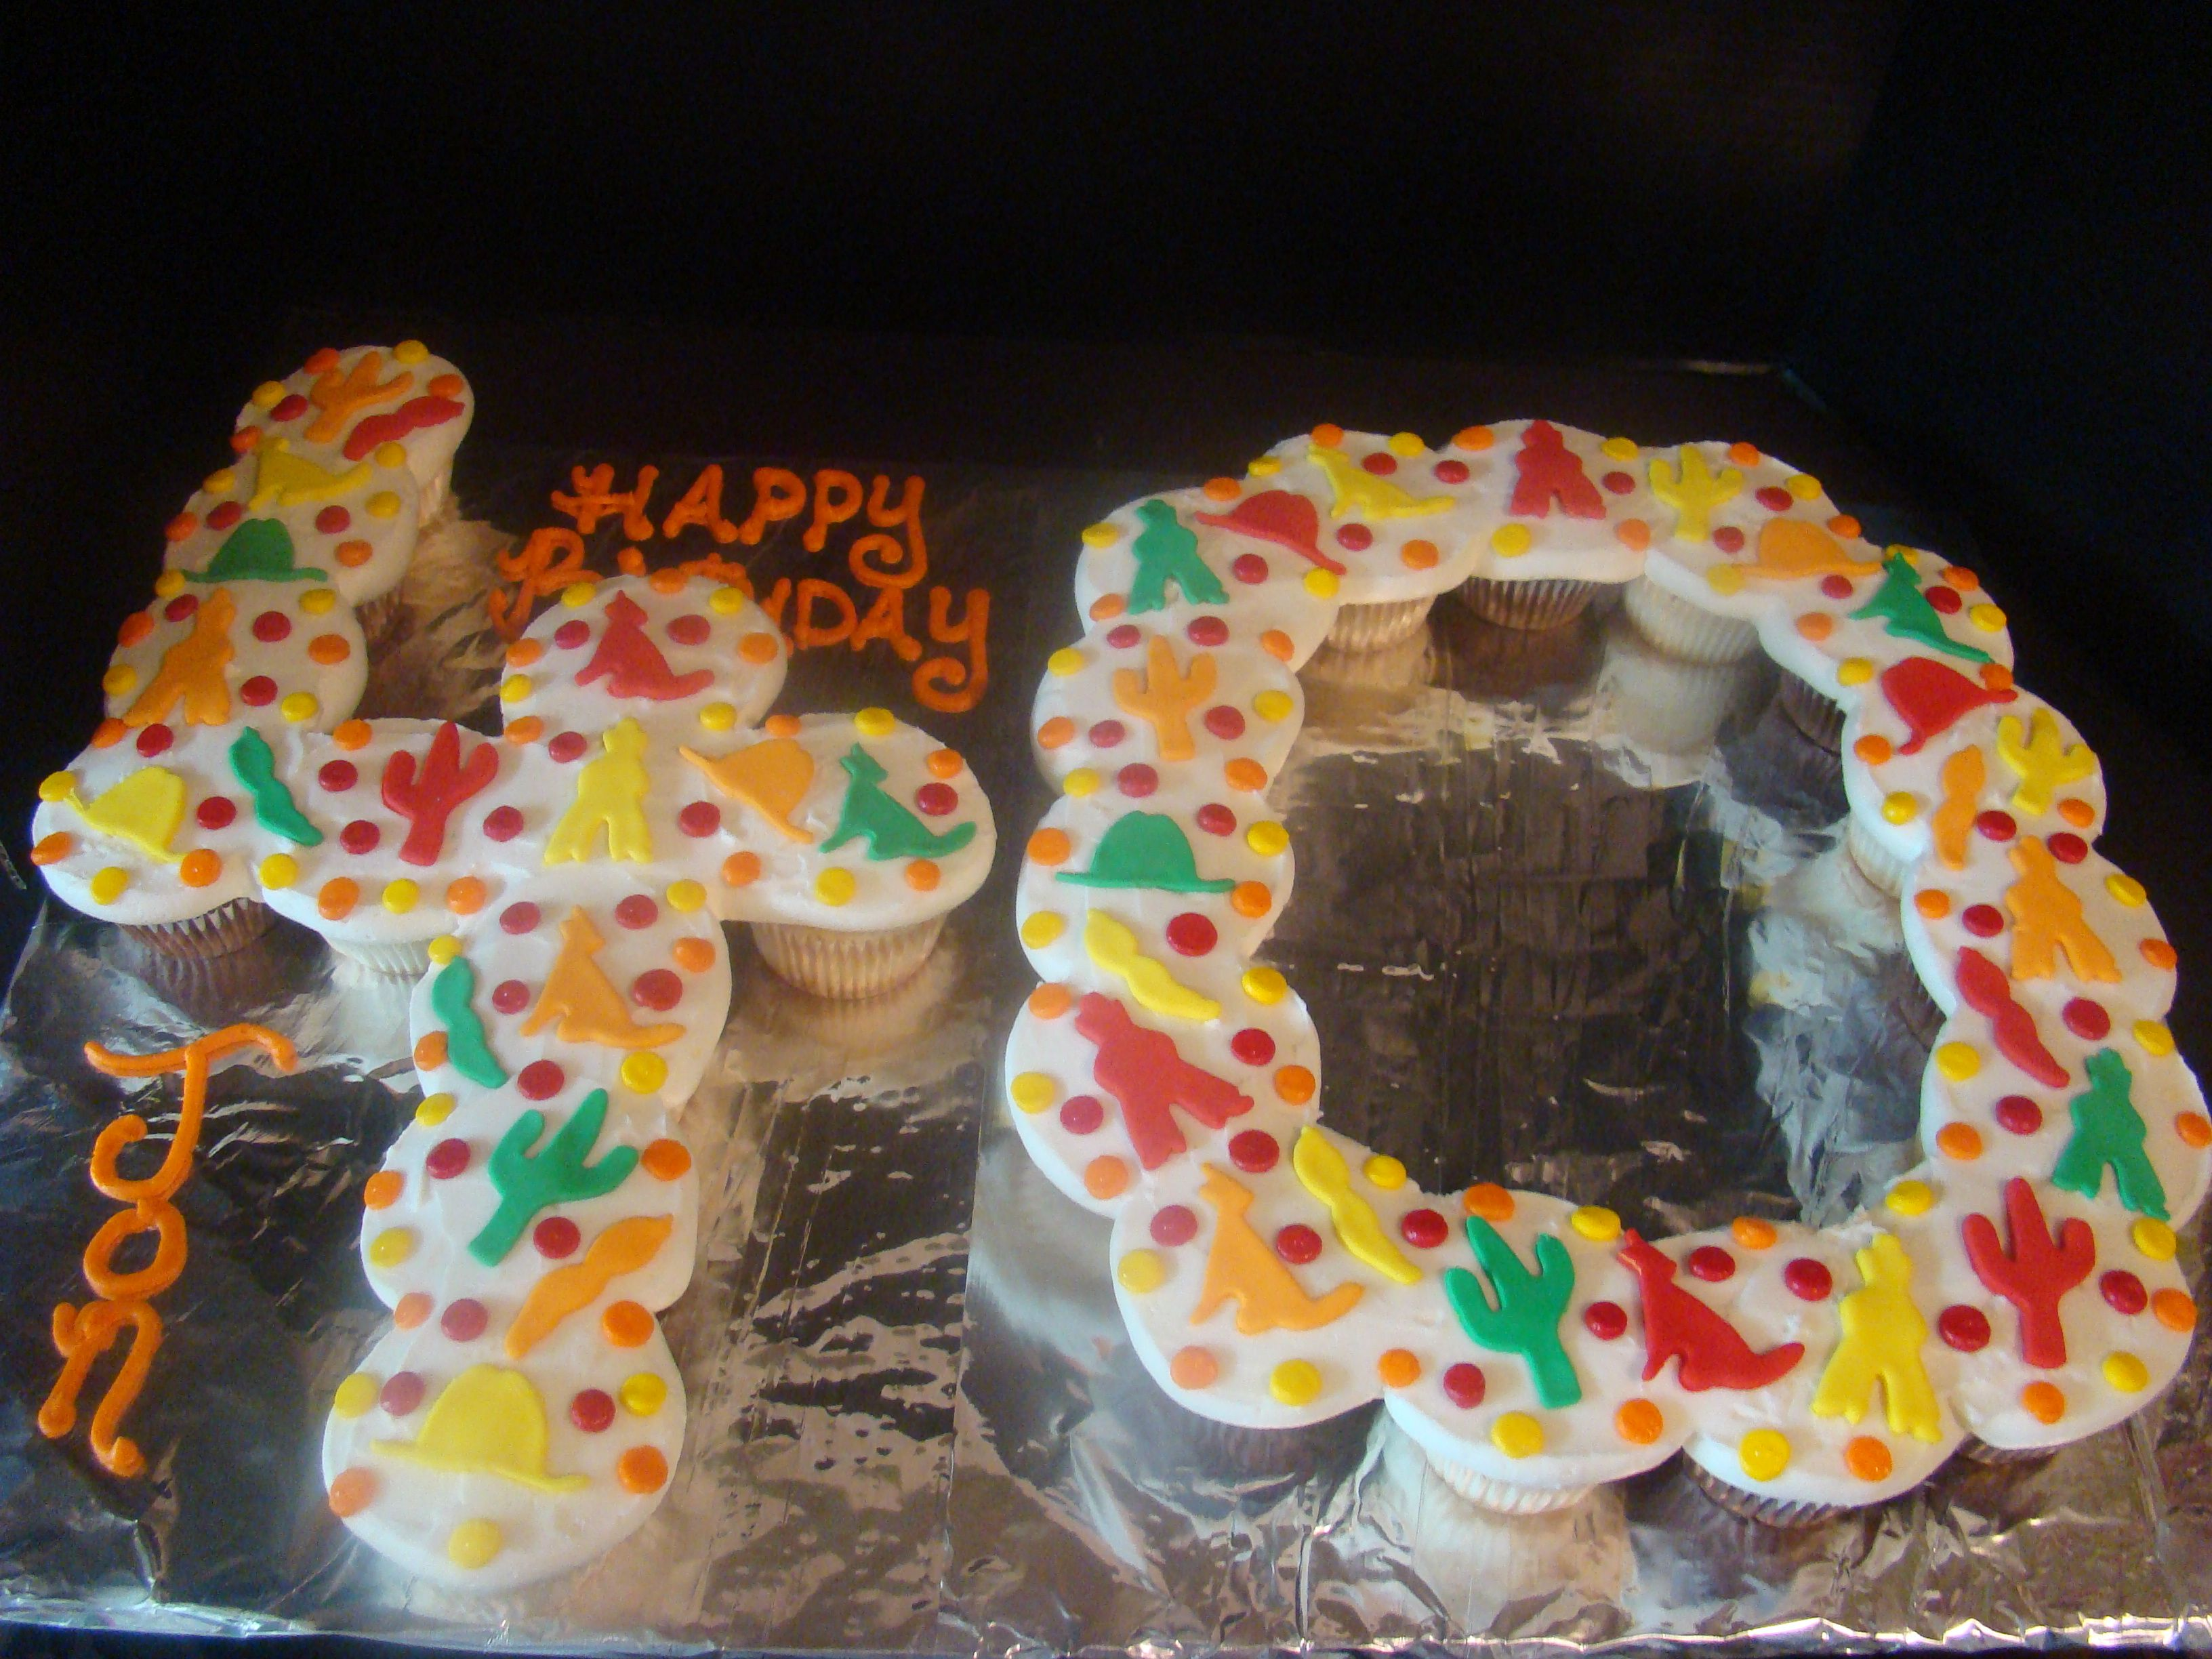 Not crazy about the Southwest theme, but I like number cakes.